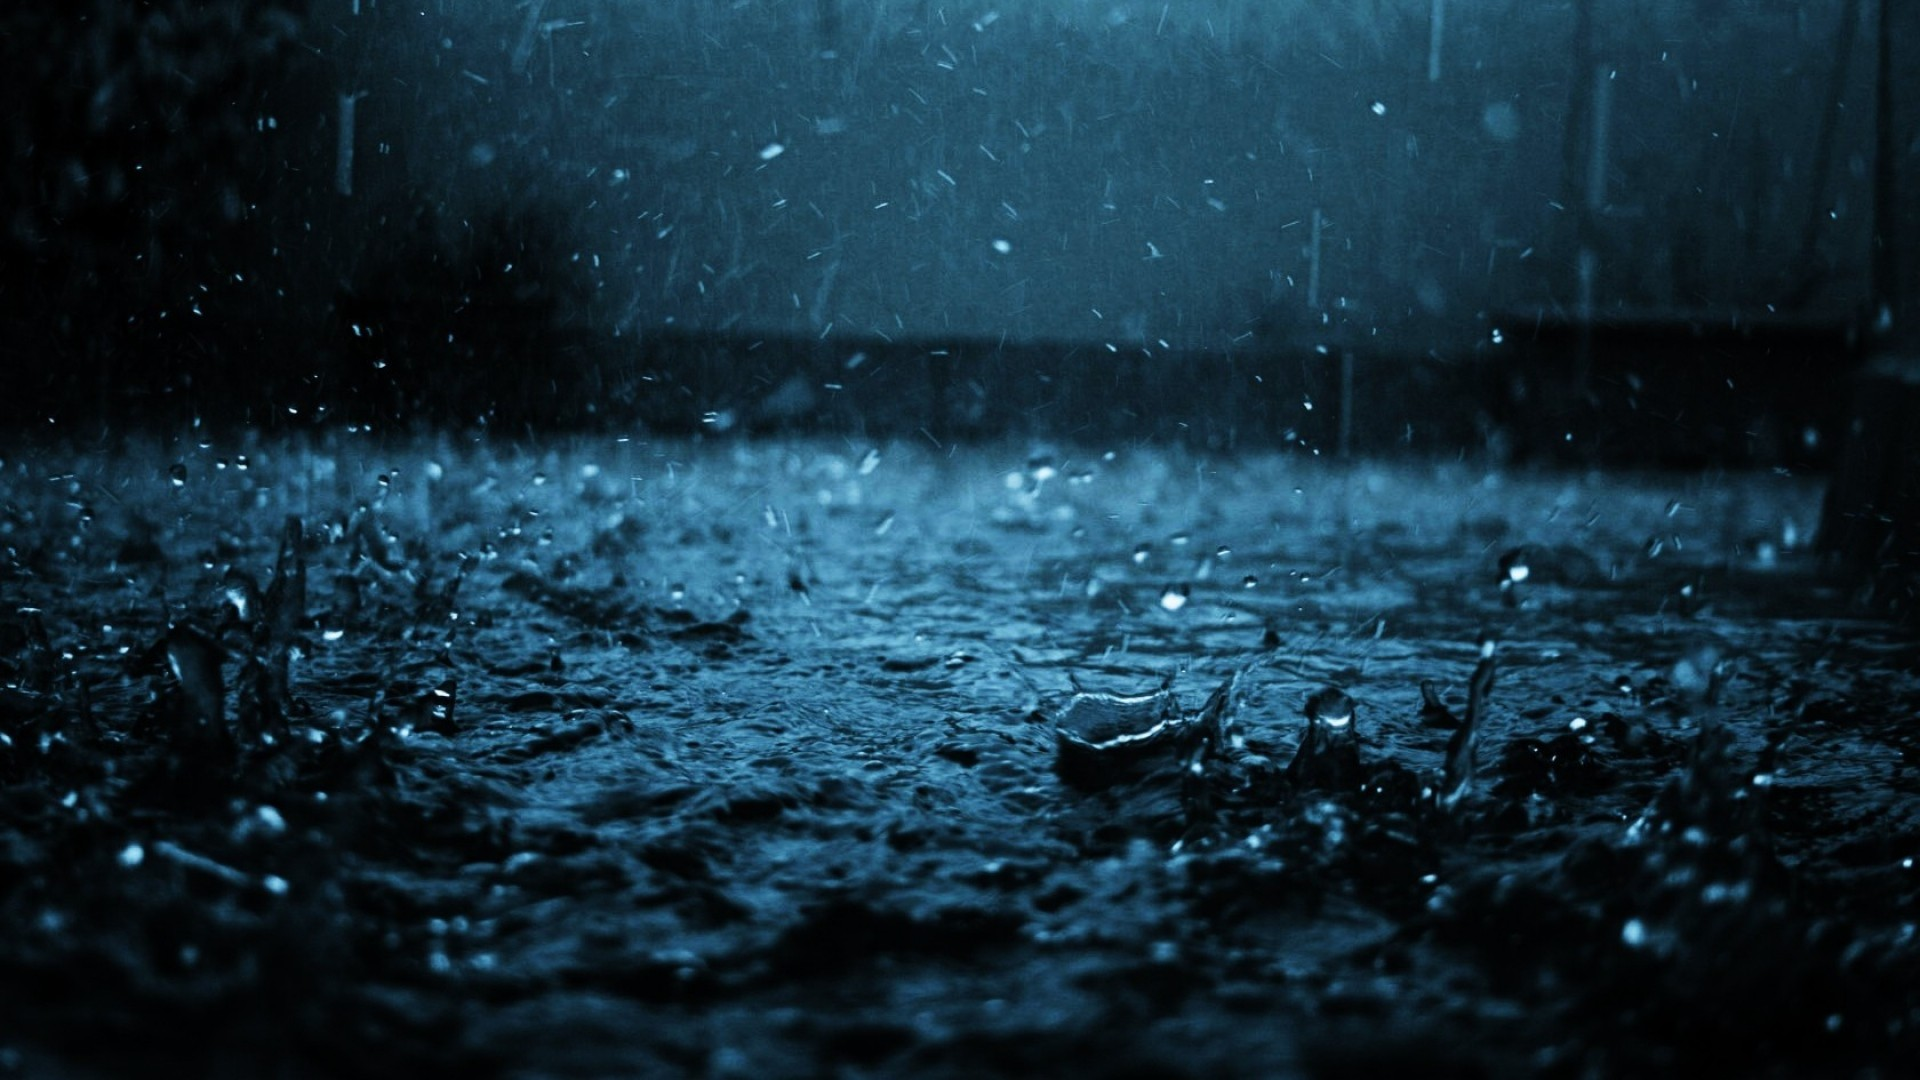 Rain wallpaper HD ·① Download free awesome full HD ...